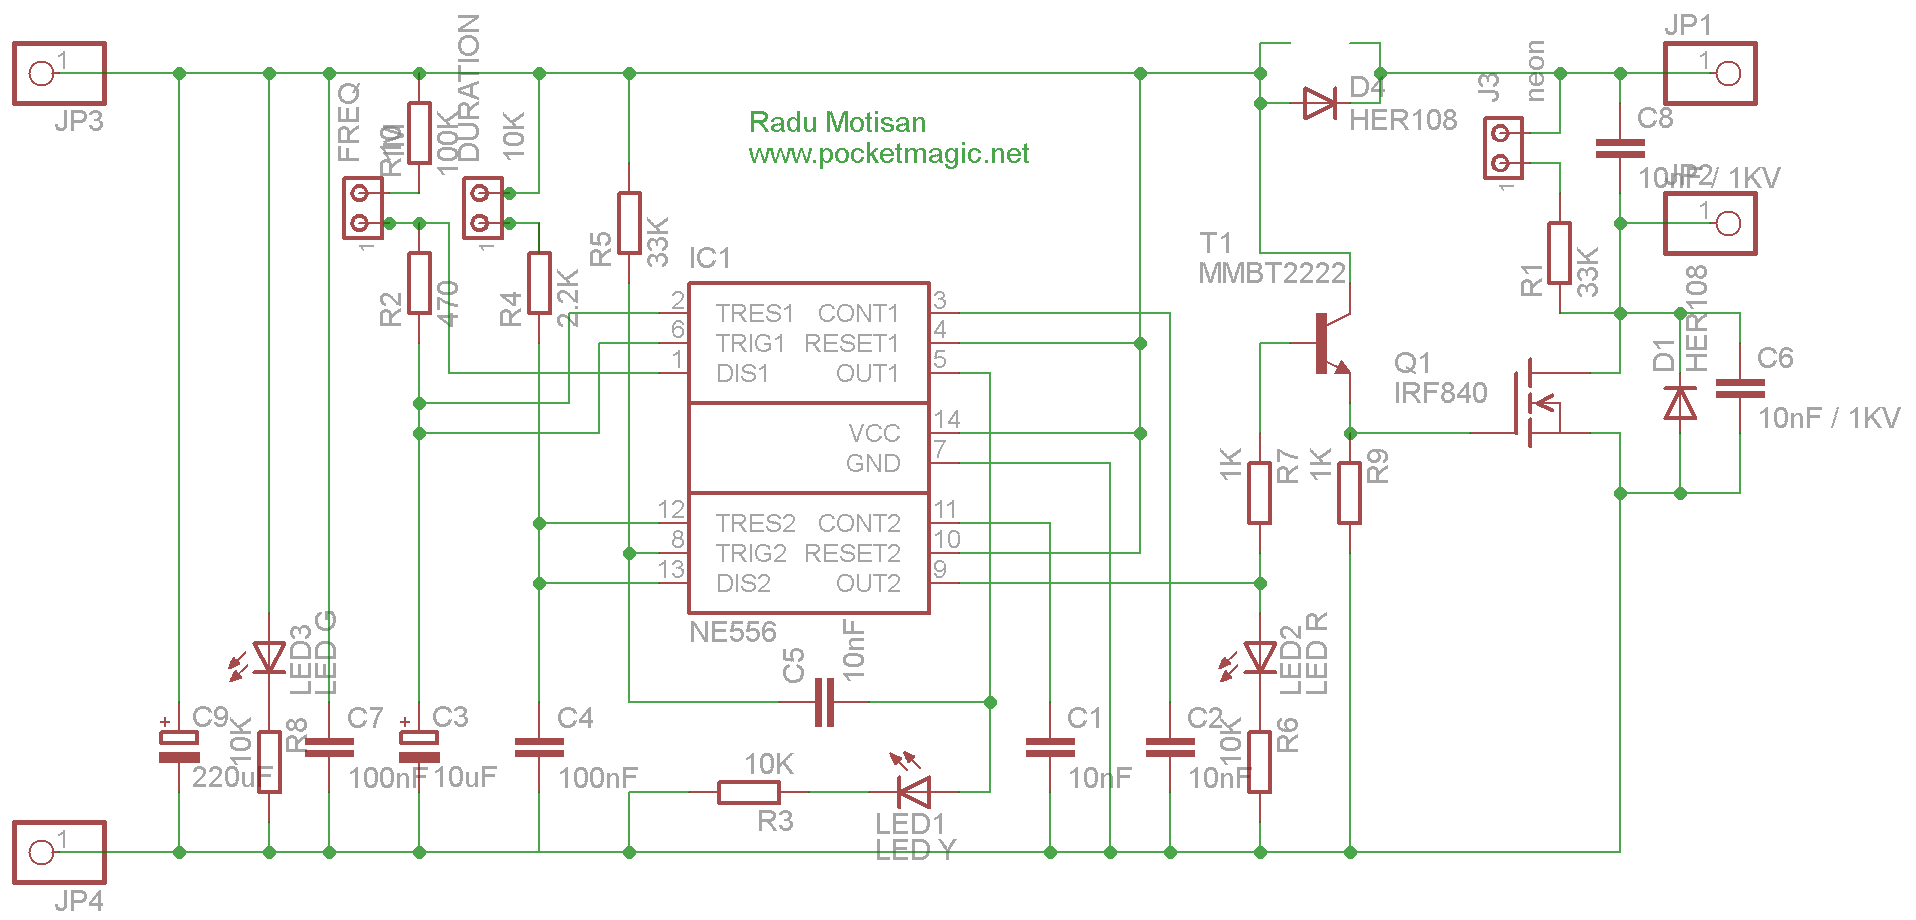 electric fence circuit for perimeter protection pocketmagic rh pocketmagic net electric fence circuit diagram diy electric fence circuit diagram 12v pdf